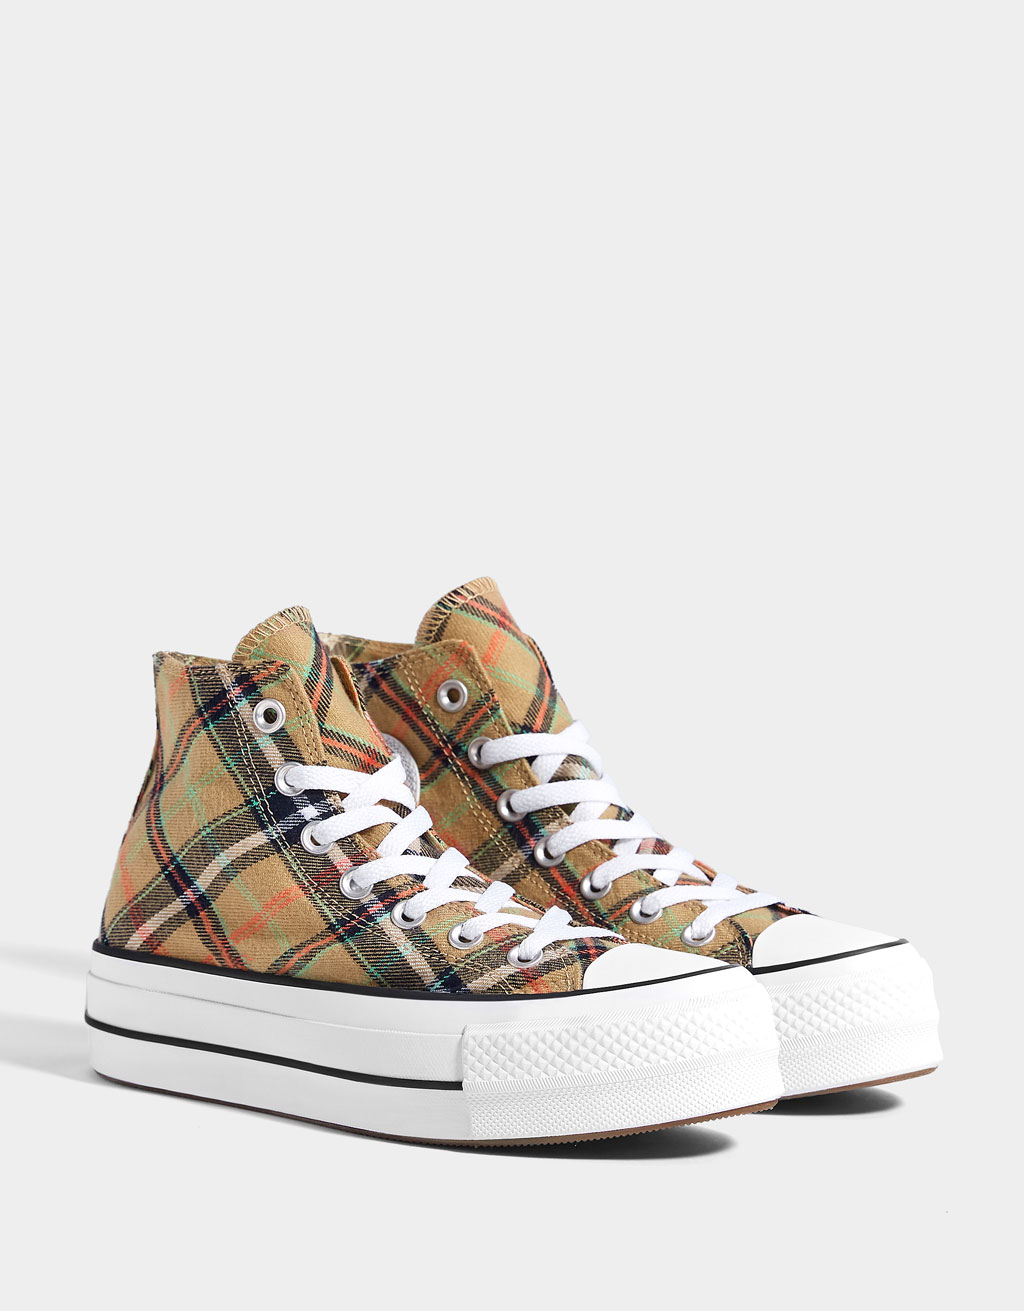 High-top CONVERSE CHUCK TAYLOR ALL STAR sneakers met plateauzool